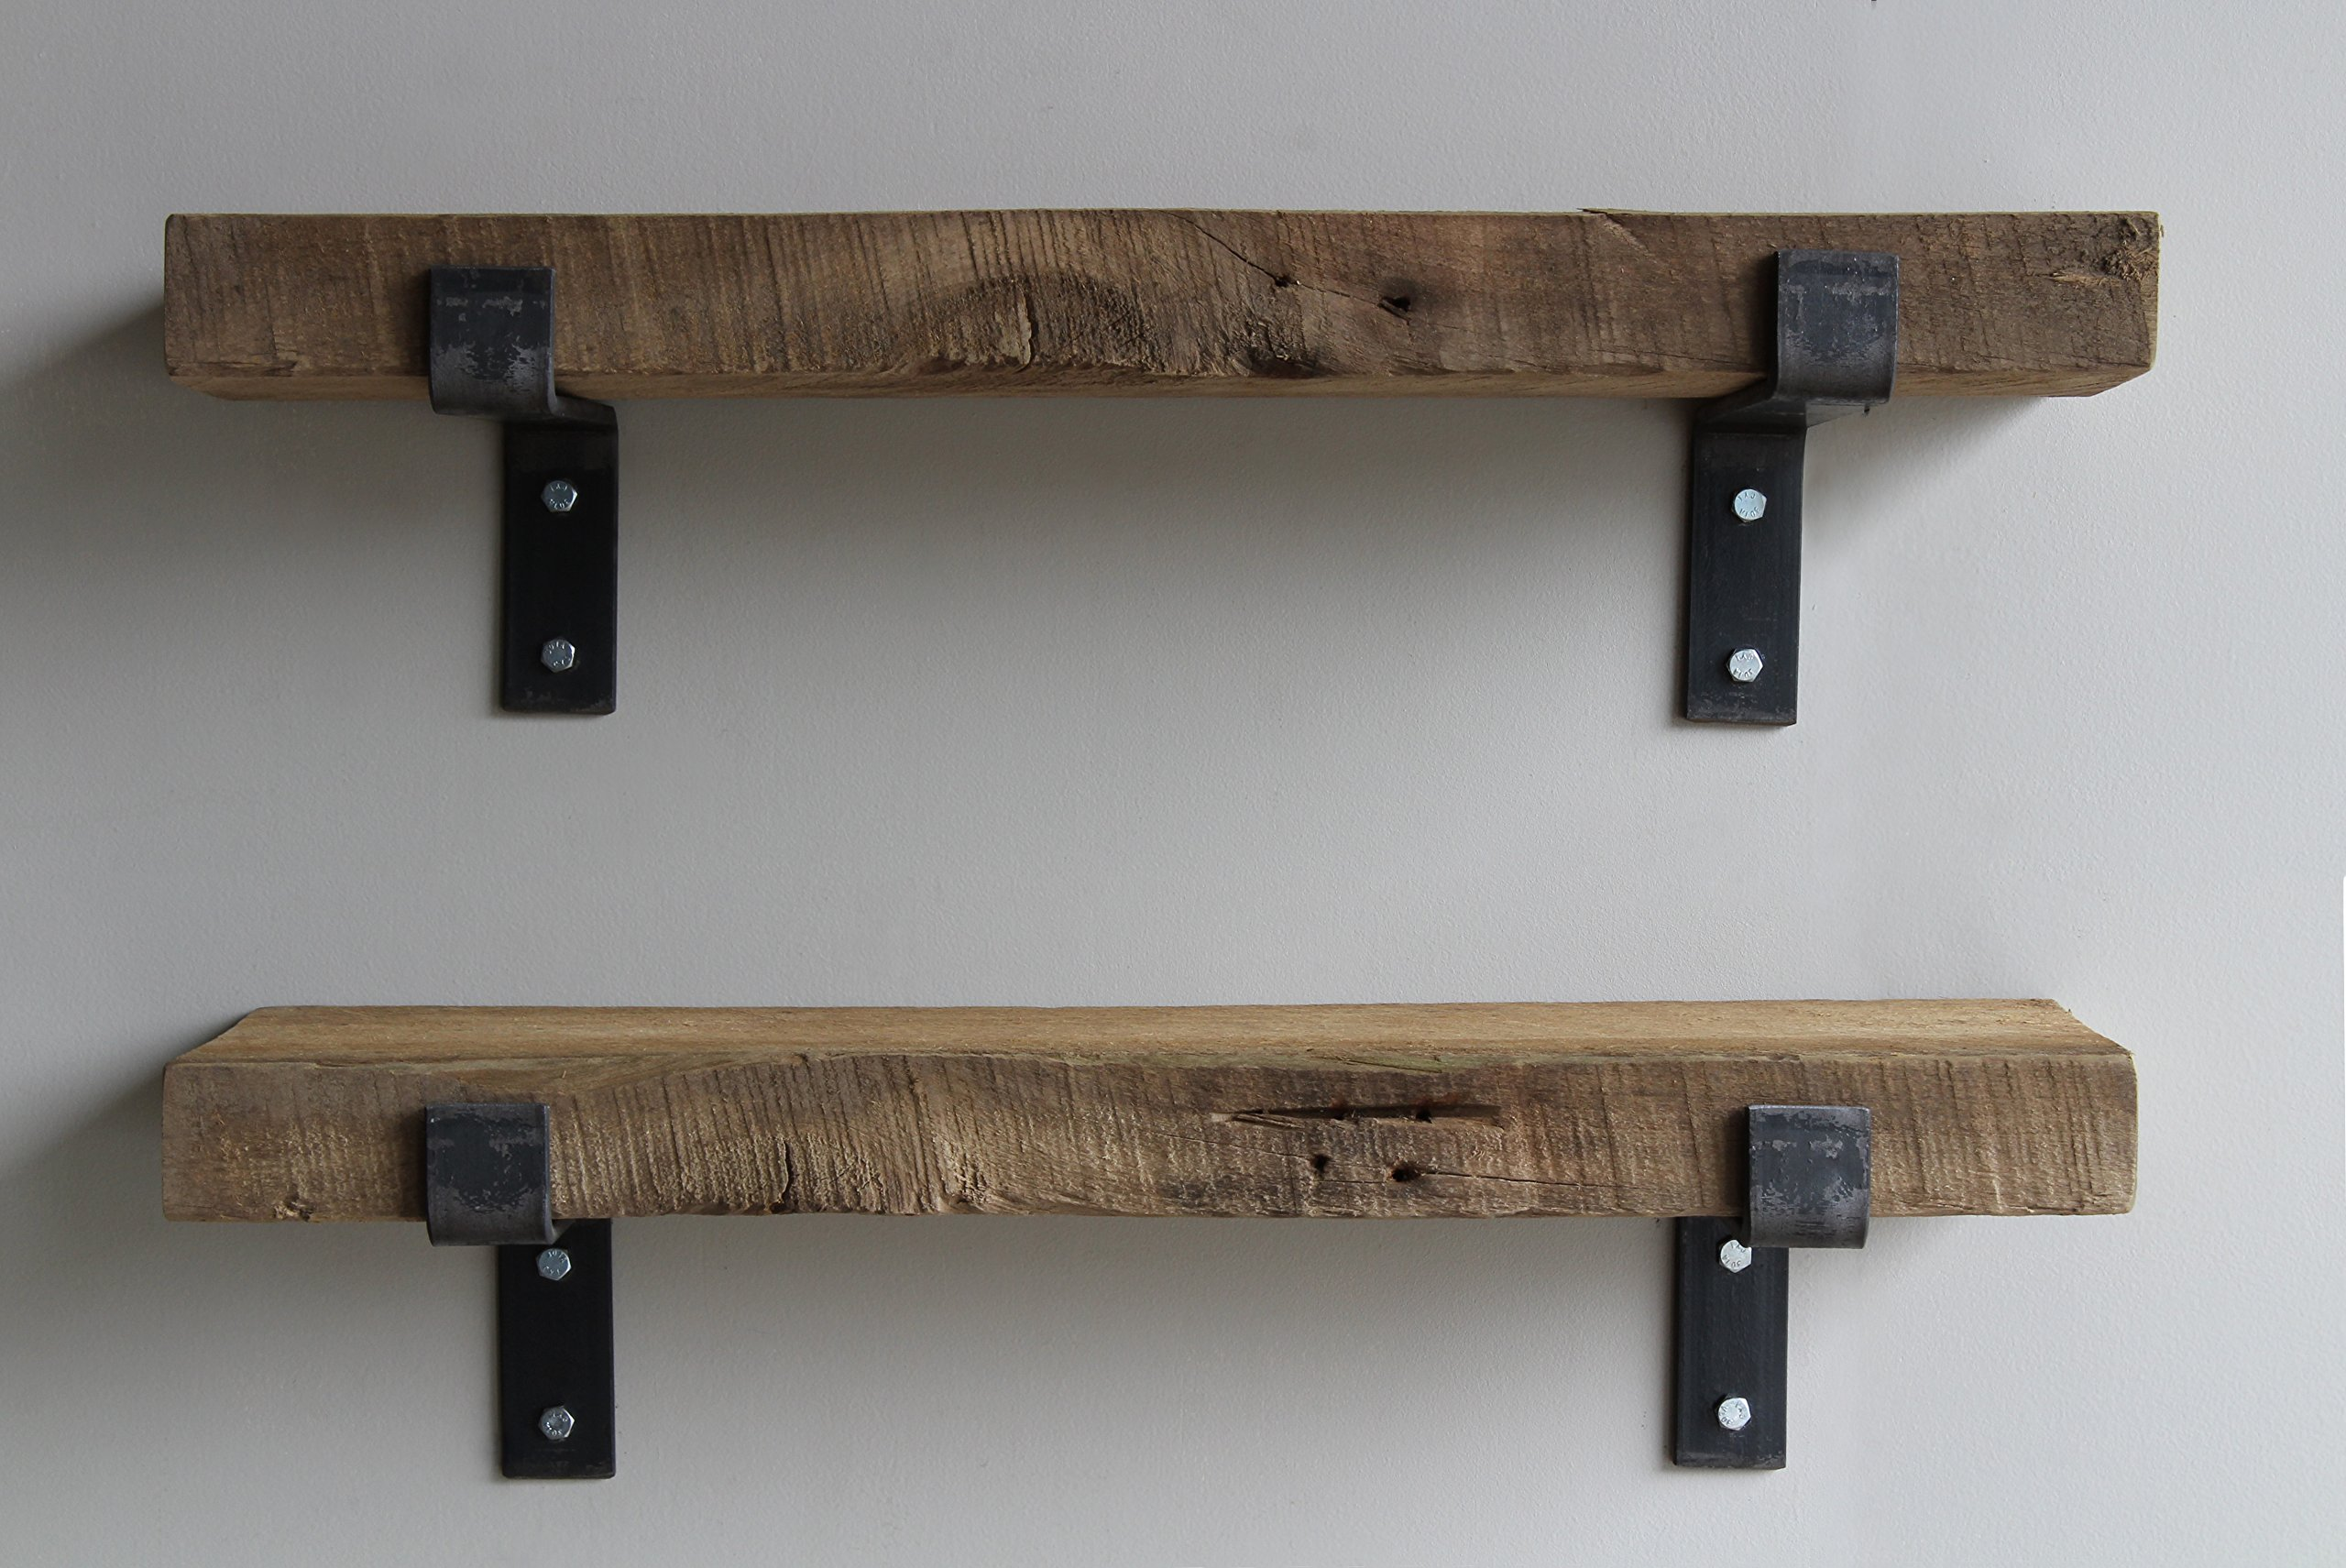 Reclaimed Wood Accent Shelves Rustic Industrial - Amish Handcrafted in Lancaster County, PA - Set of Two | 24 Inches, (Genuine Salvaged/Reclaimed with Raw Metal Brackets) (Natural 24''x 7''x 2'') by Urban Legacy (Image #7)